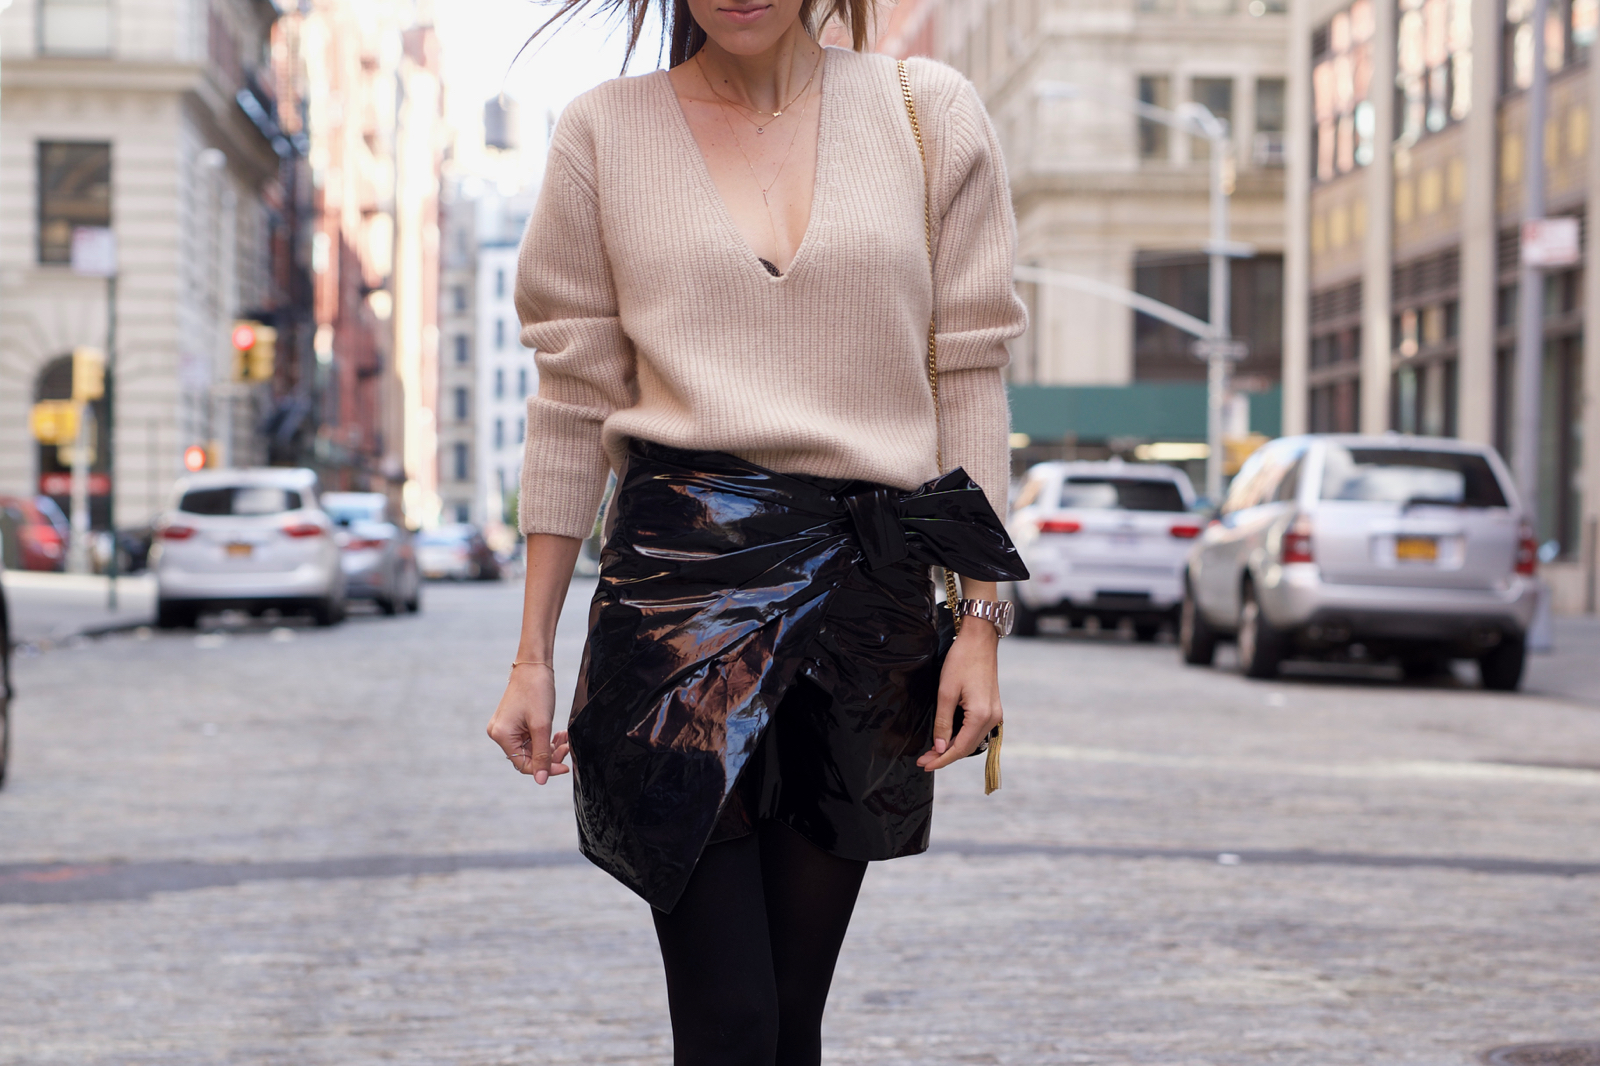 Dior Sunglasses, Khaite Sweater, Isabel Marant Patent Leather Mini Skirt, Saint Laurent Bag, Suede Booties